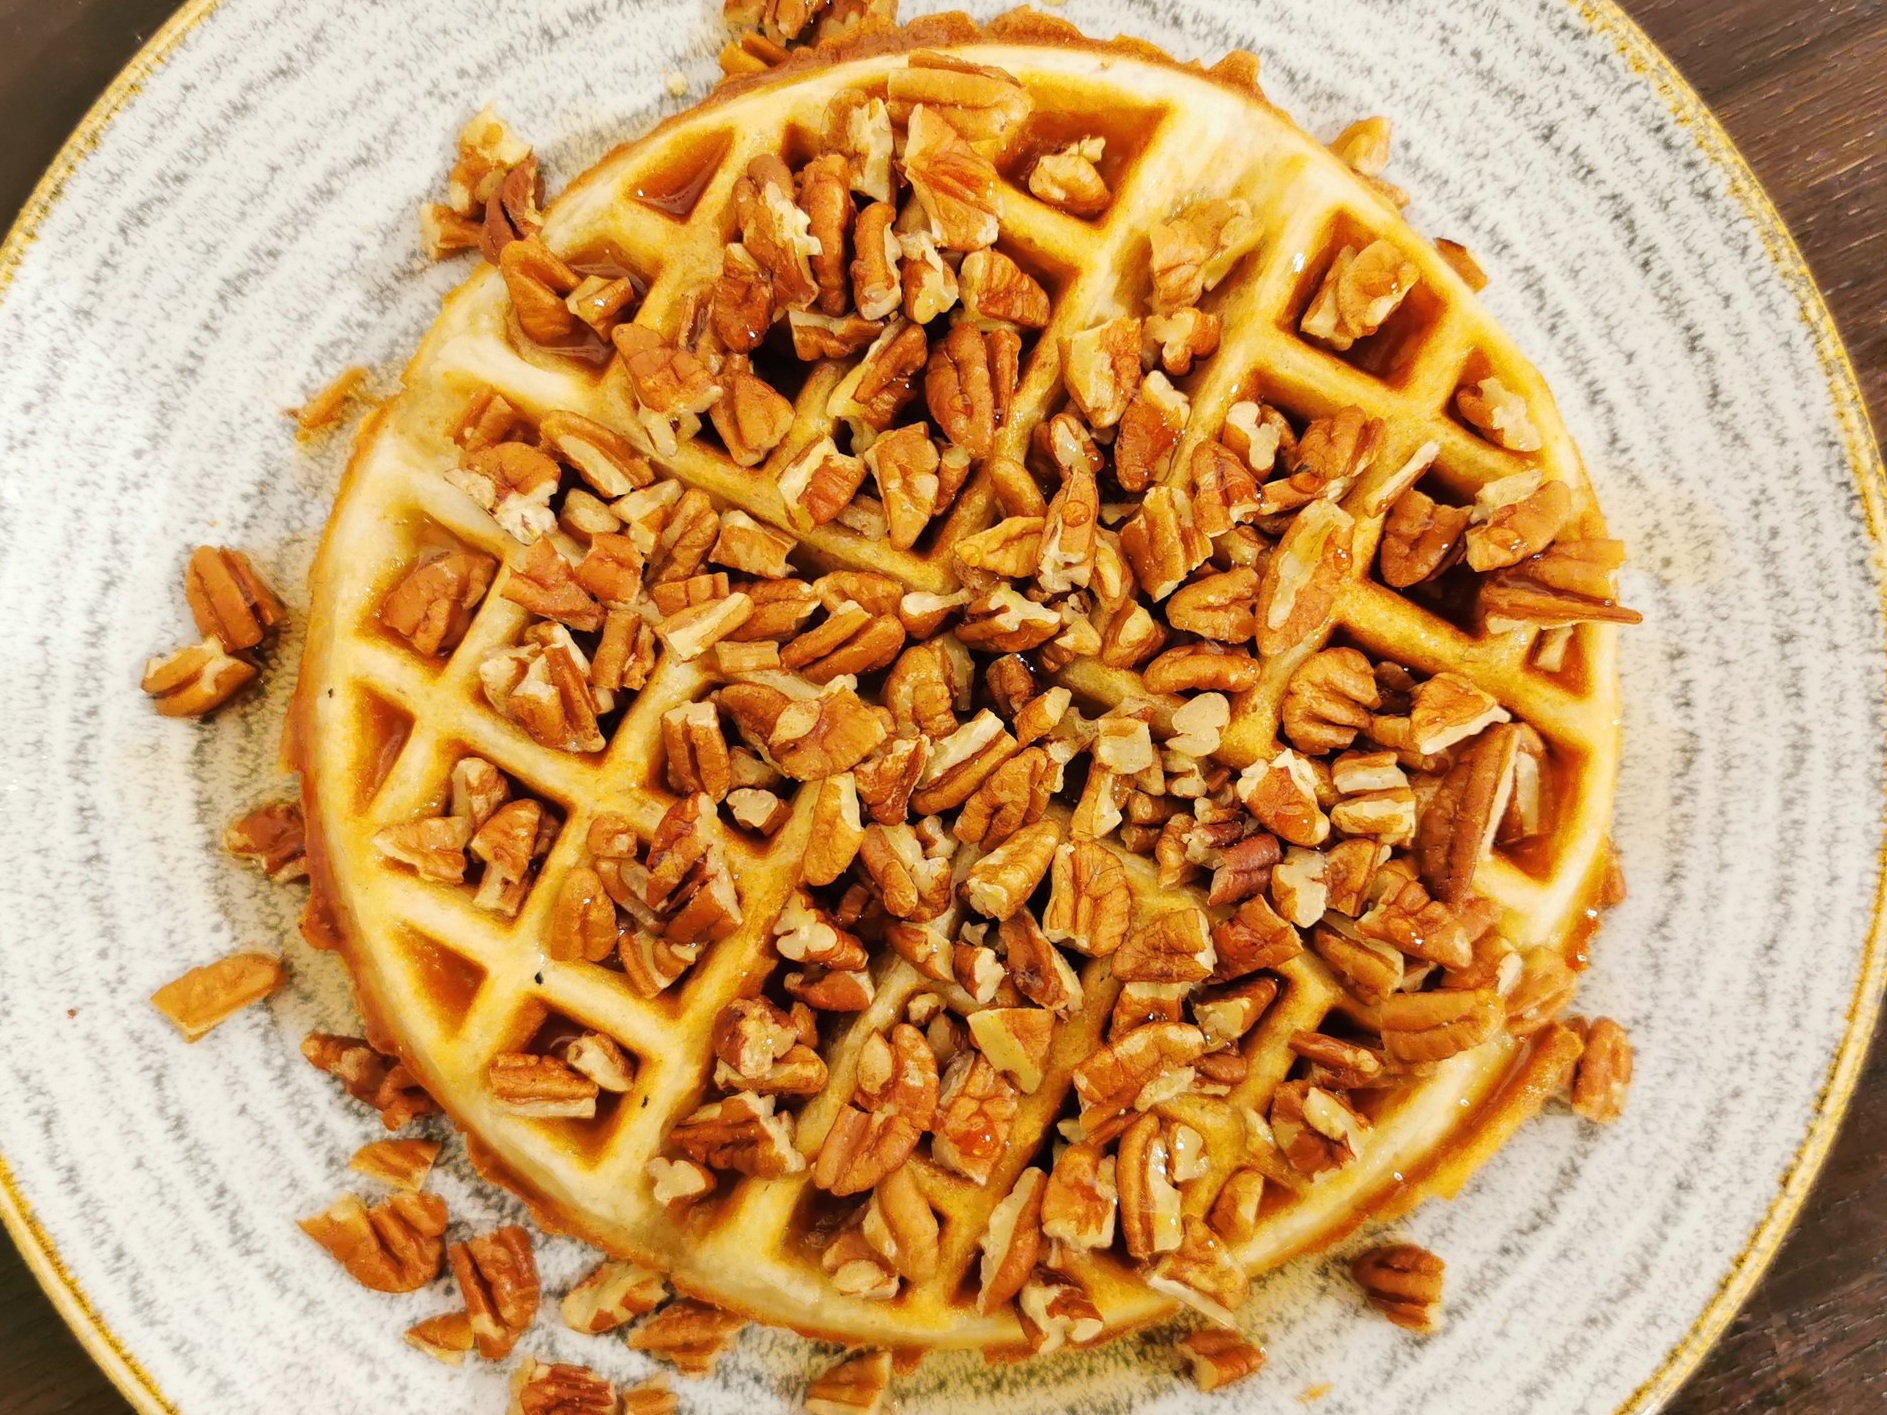 Maple Syrup and Pecan Nuts